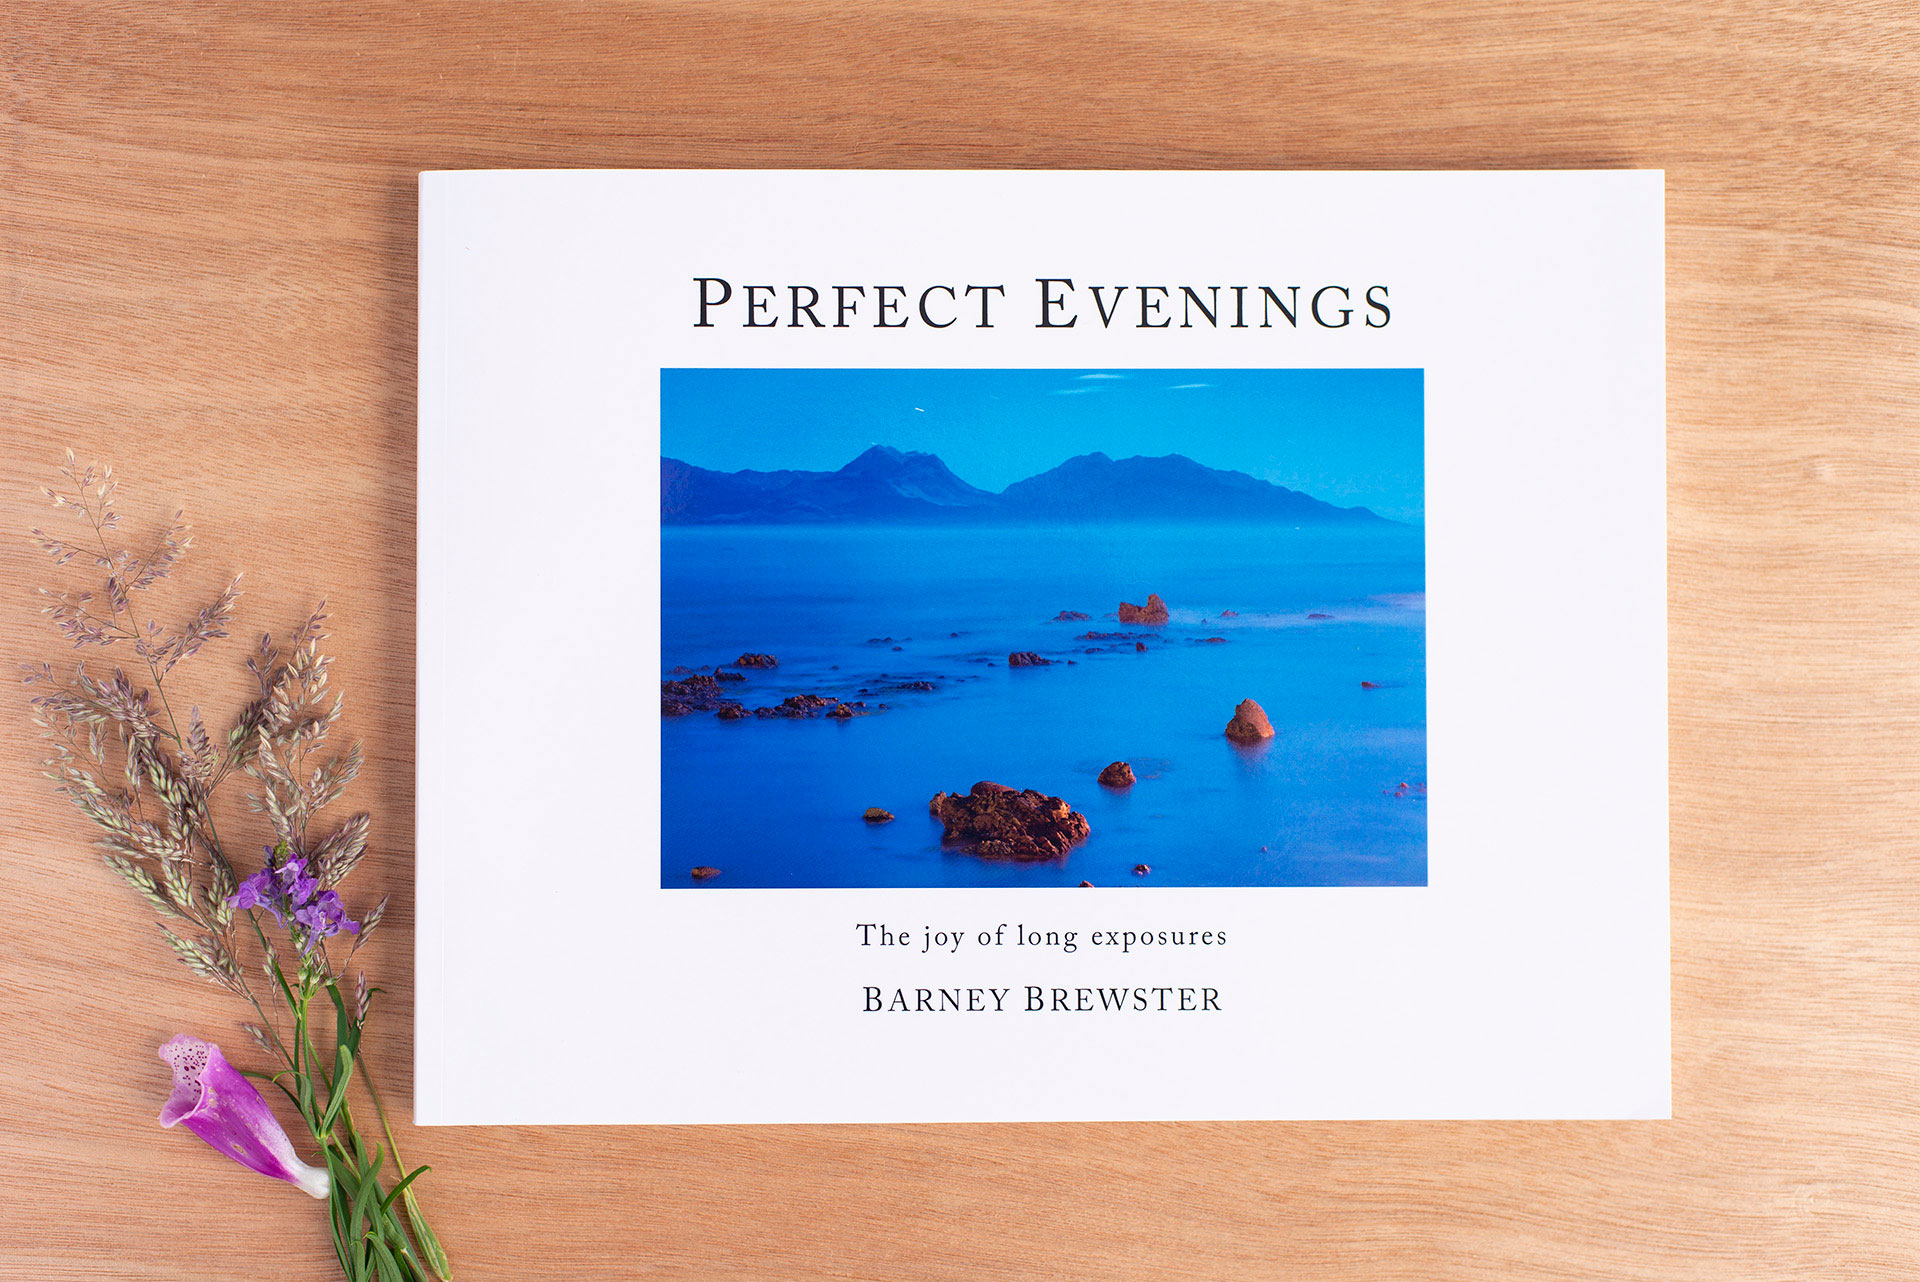 Perfect Evenings book cover by Barney Brewster, photo taken by Nana Jones